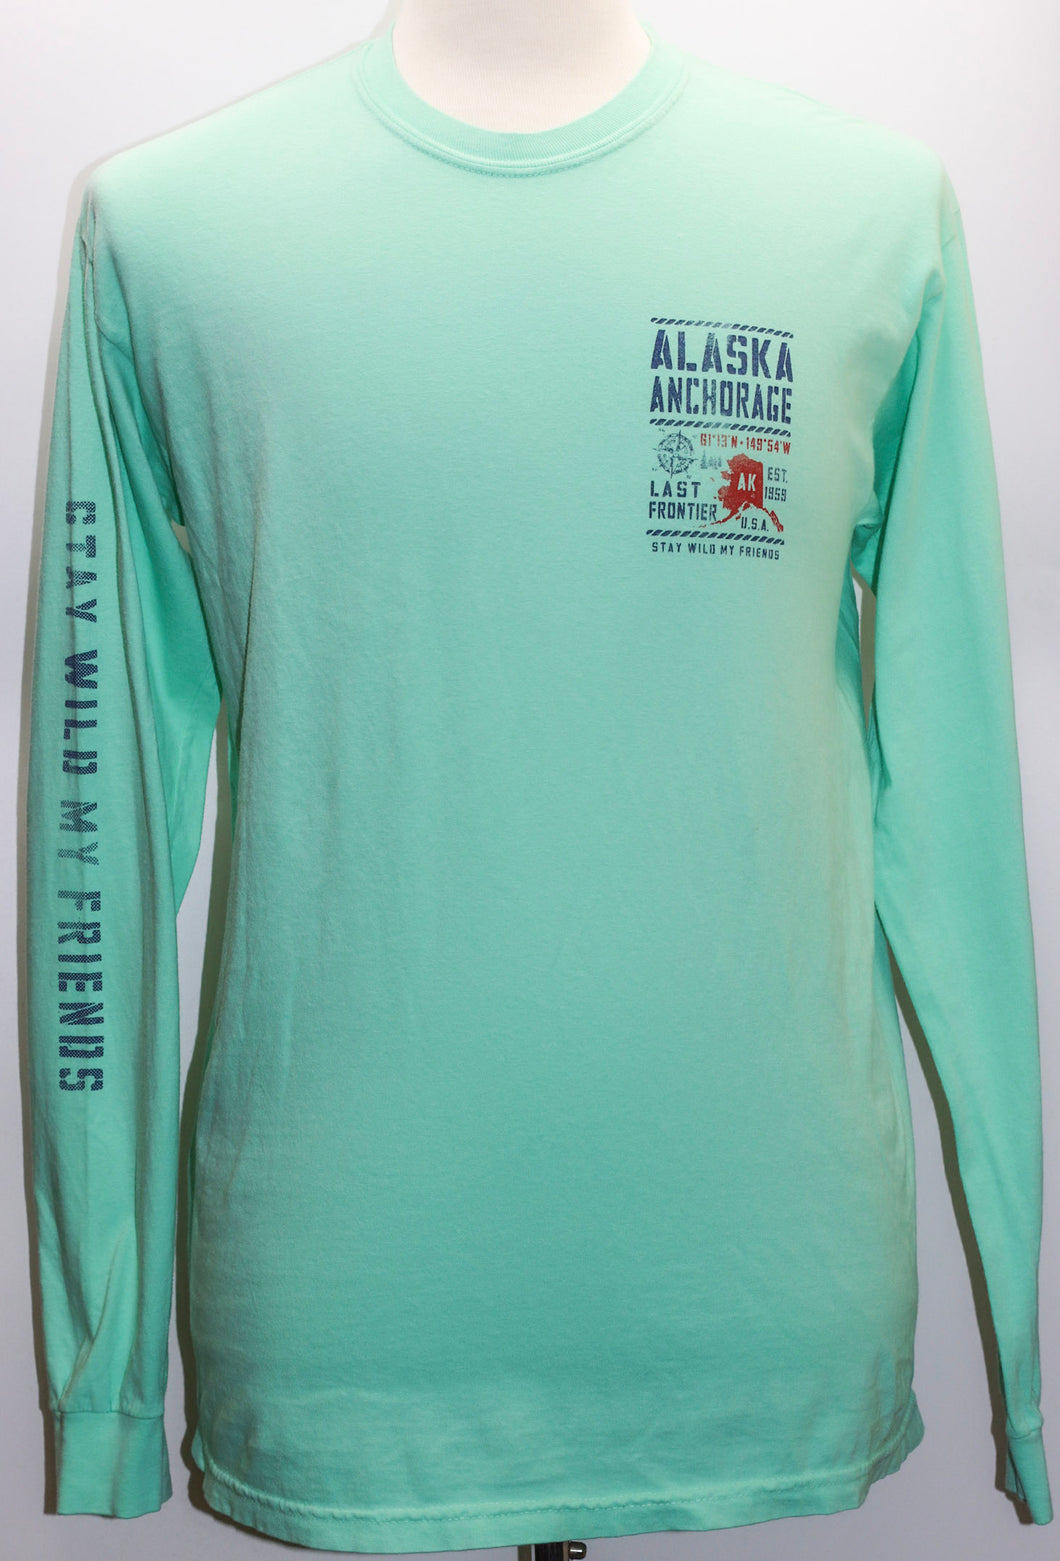 STENCIL MAP ALASKA WEATHERED LONG SLEEVE